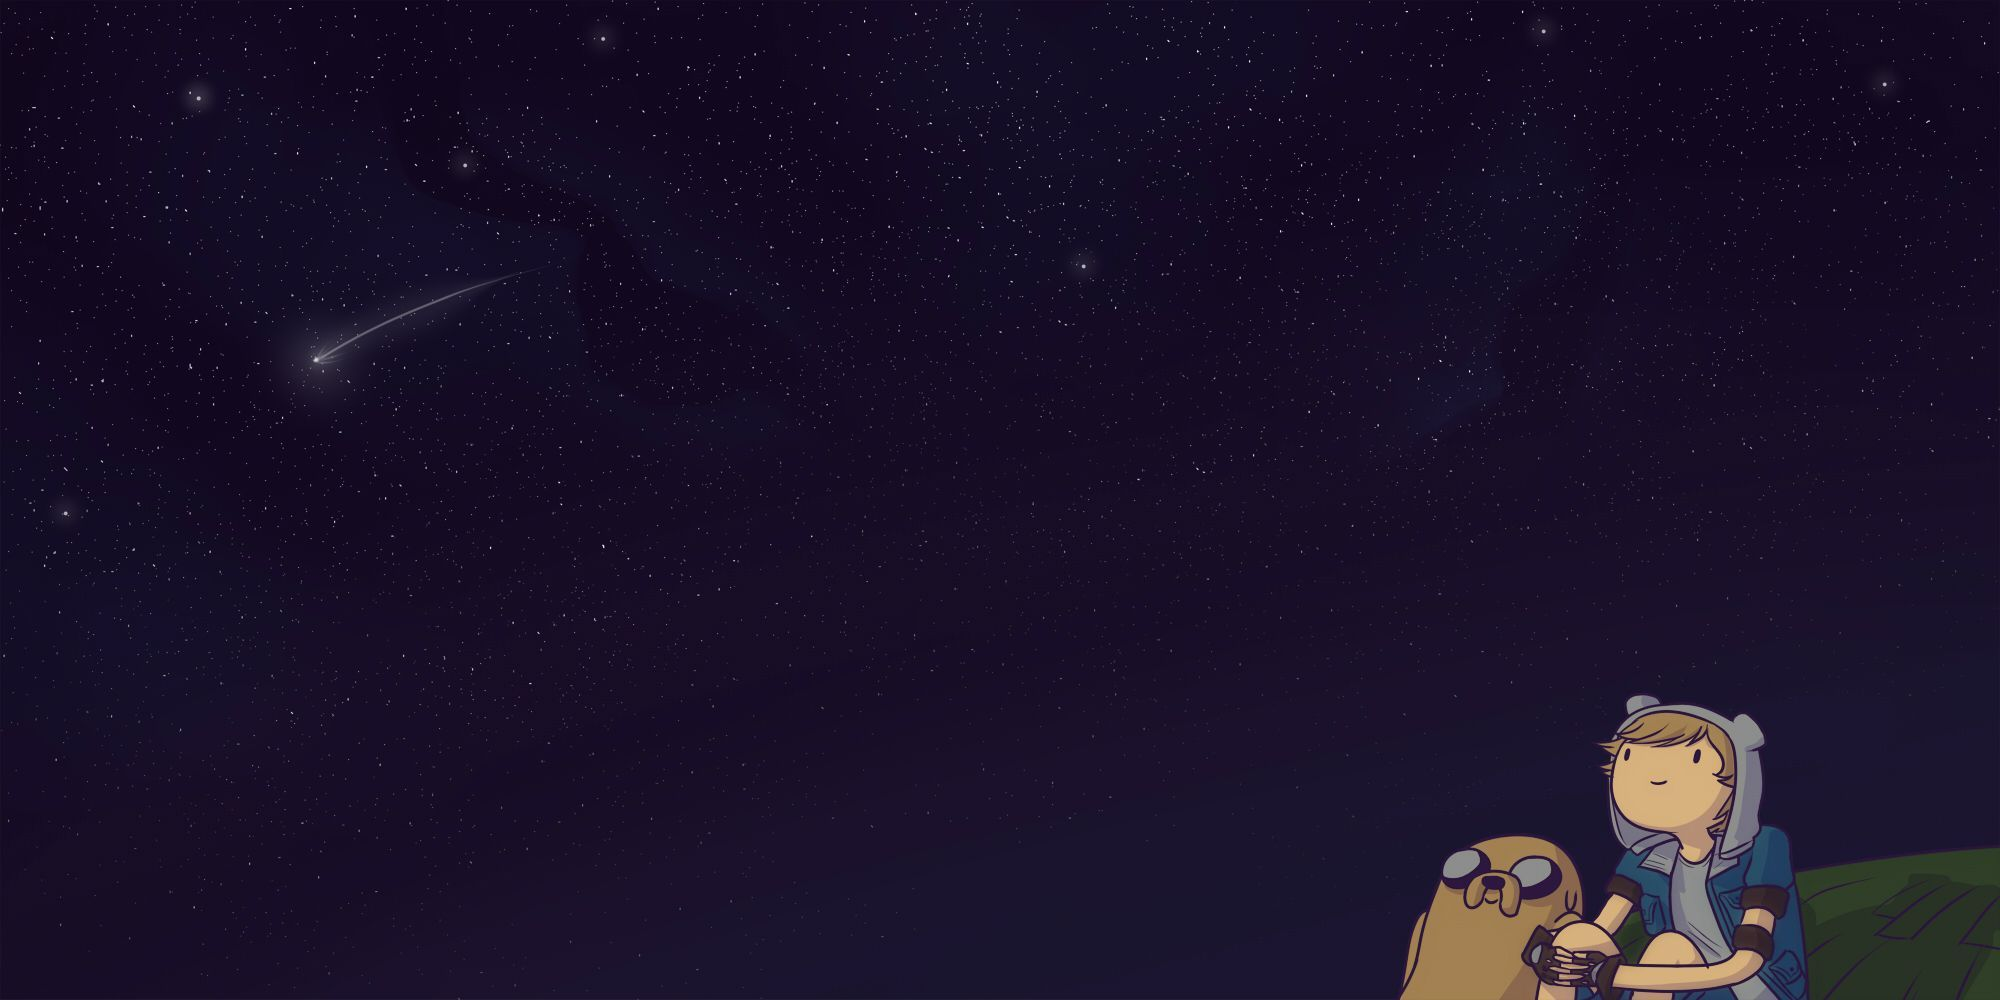 Pin By Tania R On Adventure Time Adventure Time Wallpaper Jake Adventure Time Finn The Human